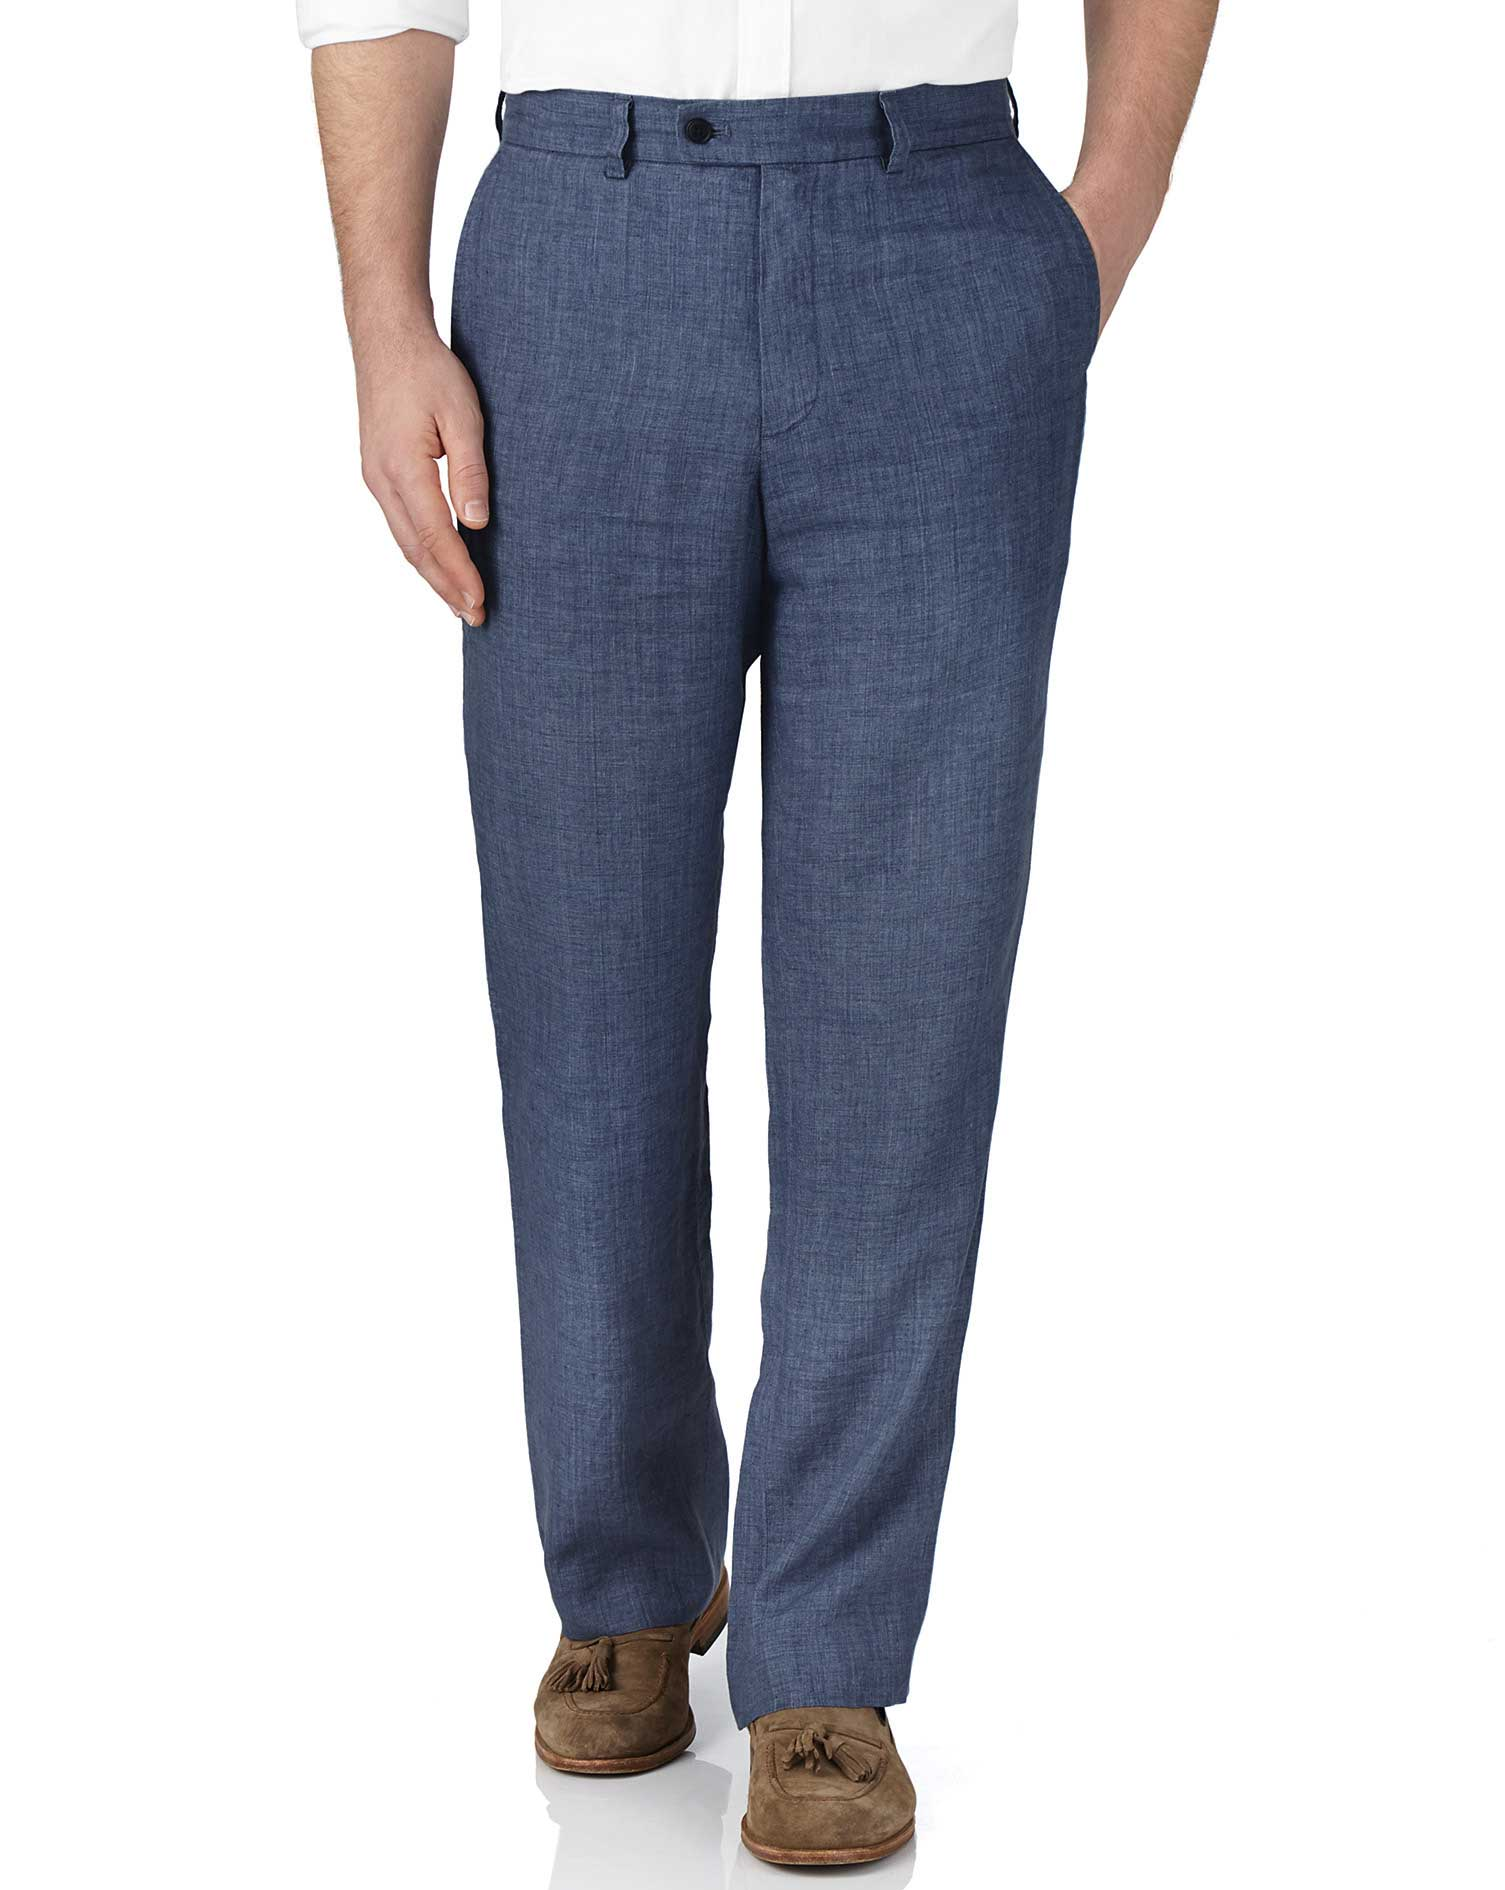 Blue Classic Fit Linen Trousers Size W32 L32 by Charles Tyrwhitt